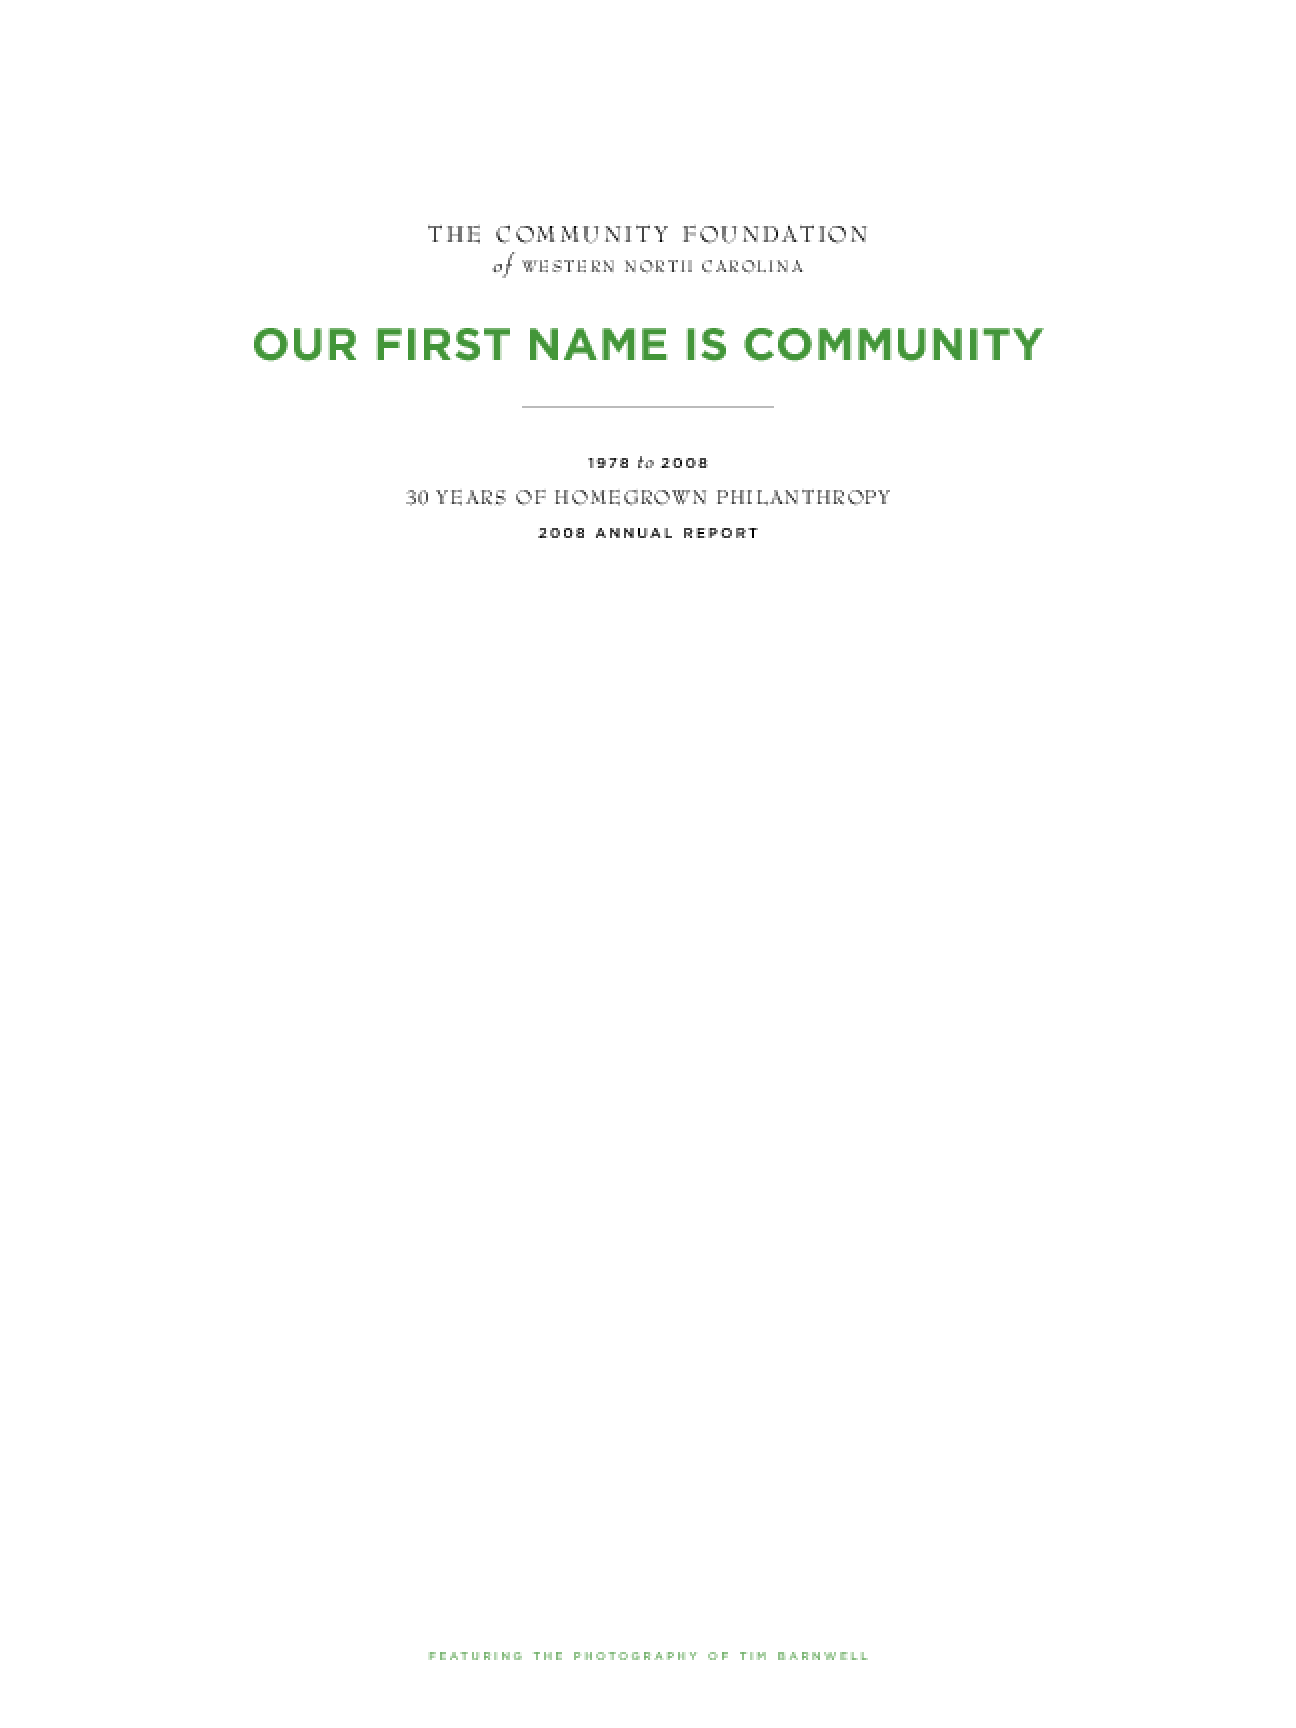 Community Foundation of Western North Carolina - 2008 Annual Report